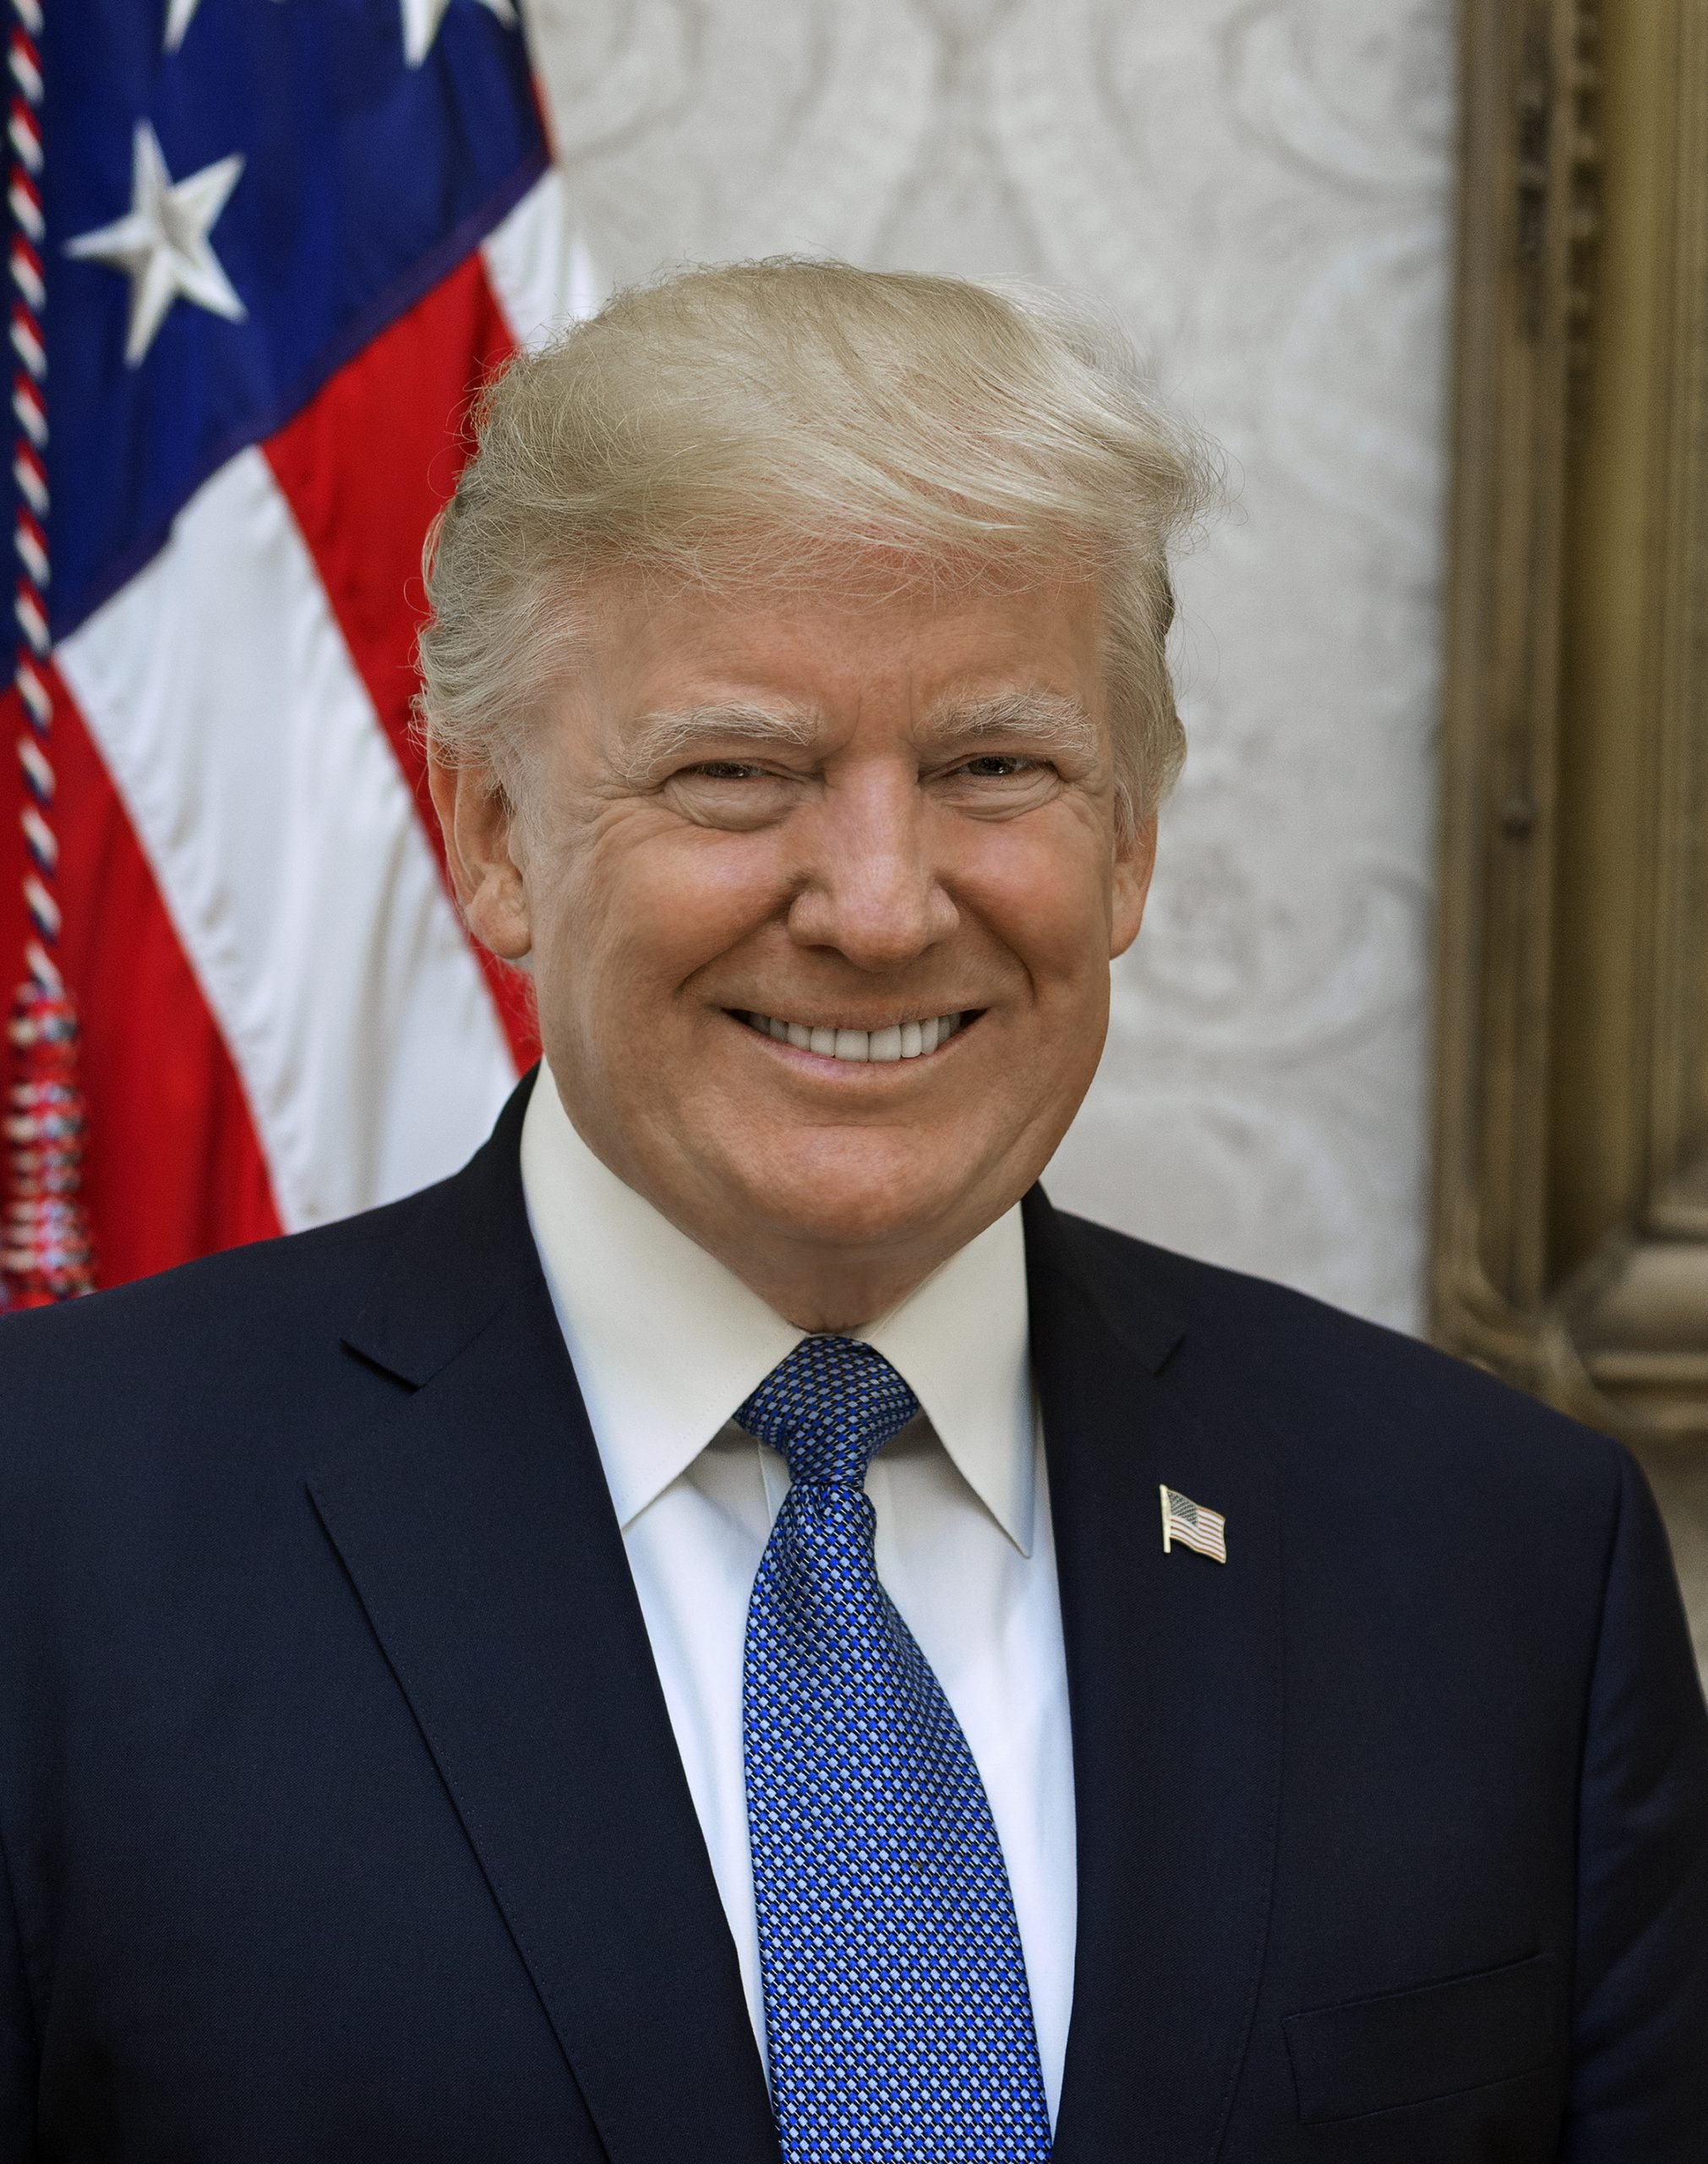 Official portrait of Pres. Donald Trump